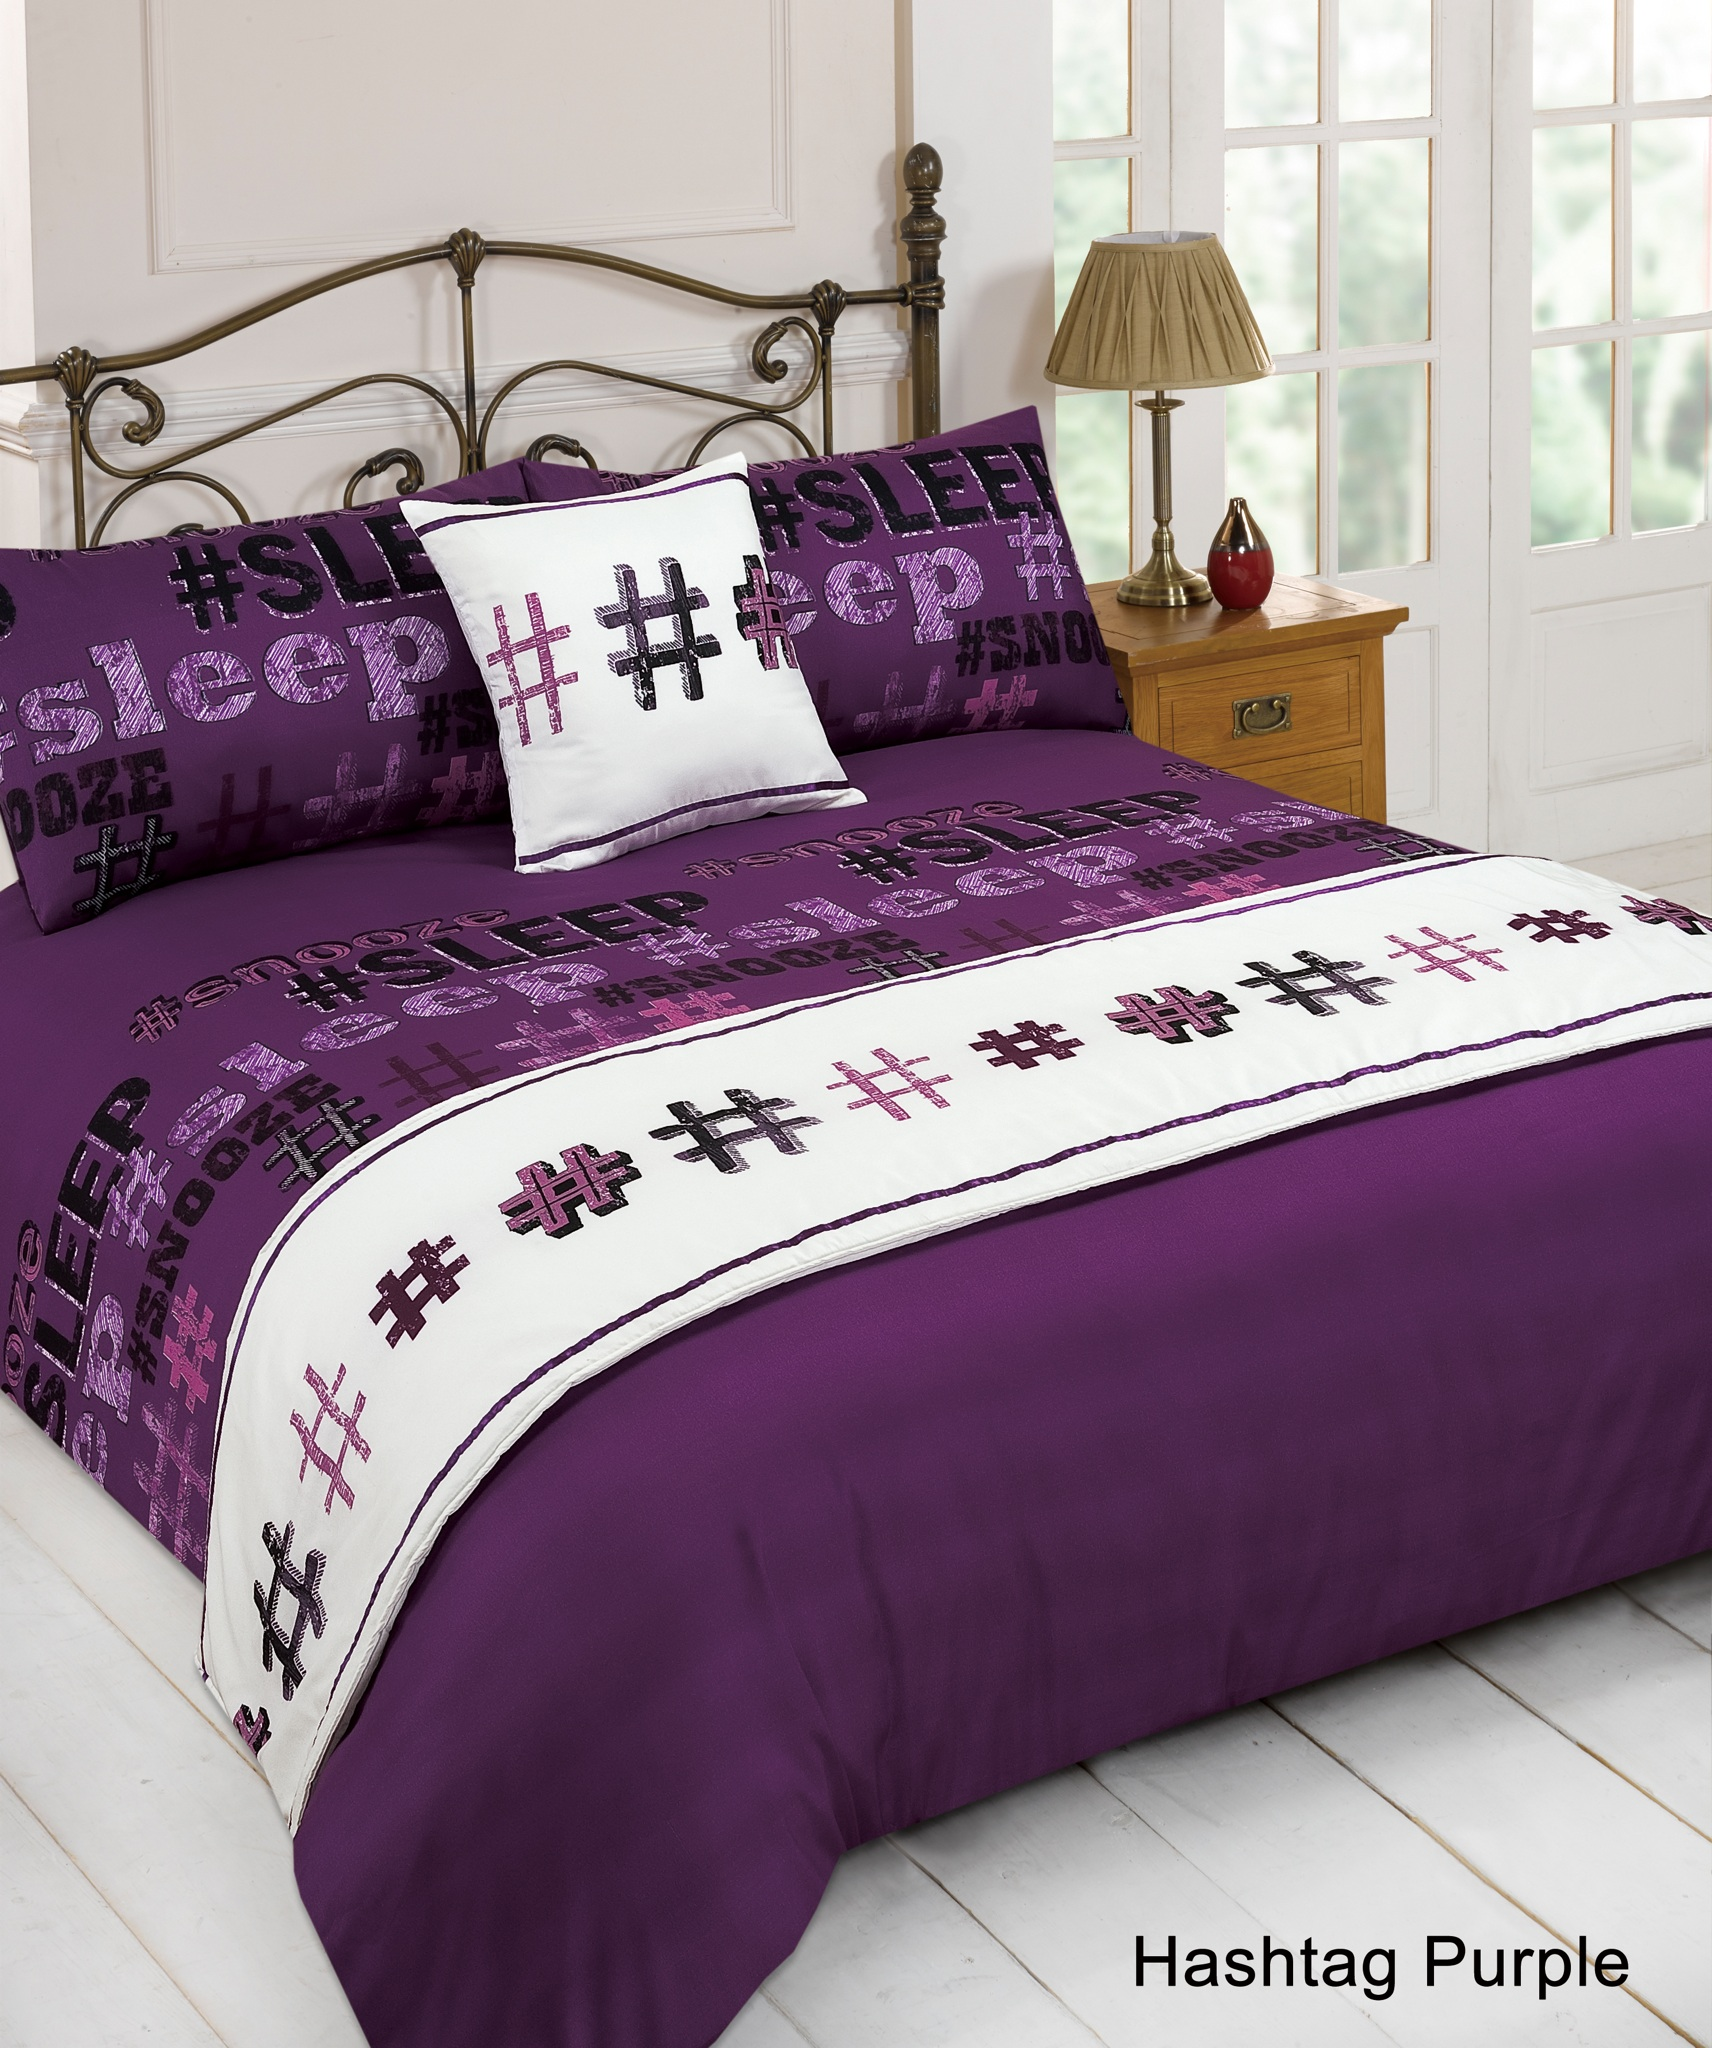 BEDDING BASICS. How to Make the Perfect Bed; How to Choose the Best Bed Sheets for You; BEDDING SIZES & MEASUREMENTS. European Size Pillows King Size Pillows. Specialty Size Pillows King Size Pads & Toppers California King Pads & Toppers. SHOP BY SIZE. Keep it neat. Find the comforter or duvet cover from our best brands that fit your.